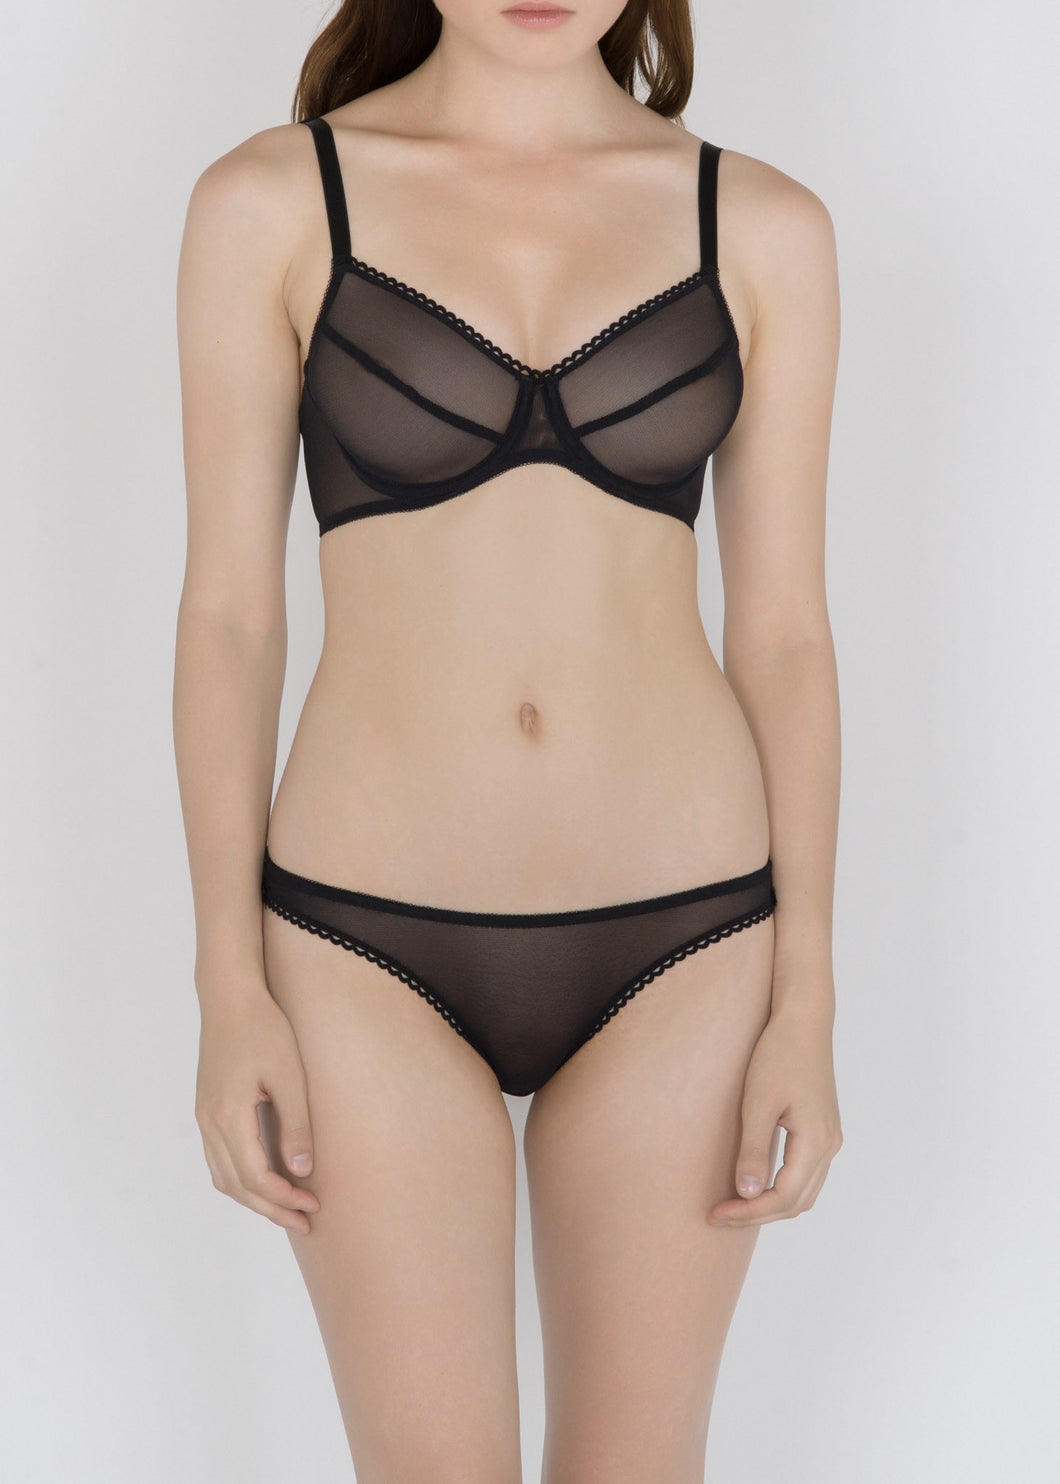 Sheer French Tulle Bikini Brief in Basic Colors + Fluorescents - DEBORAH MARQUIT